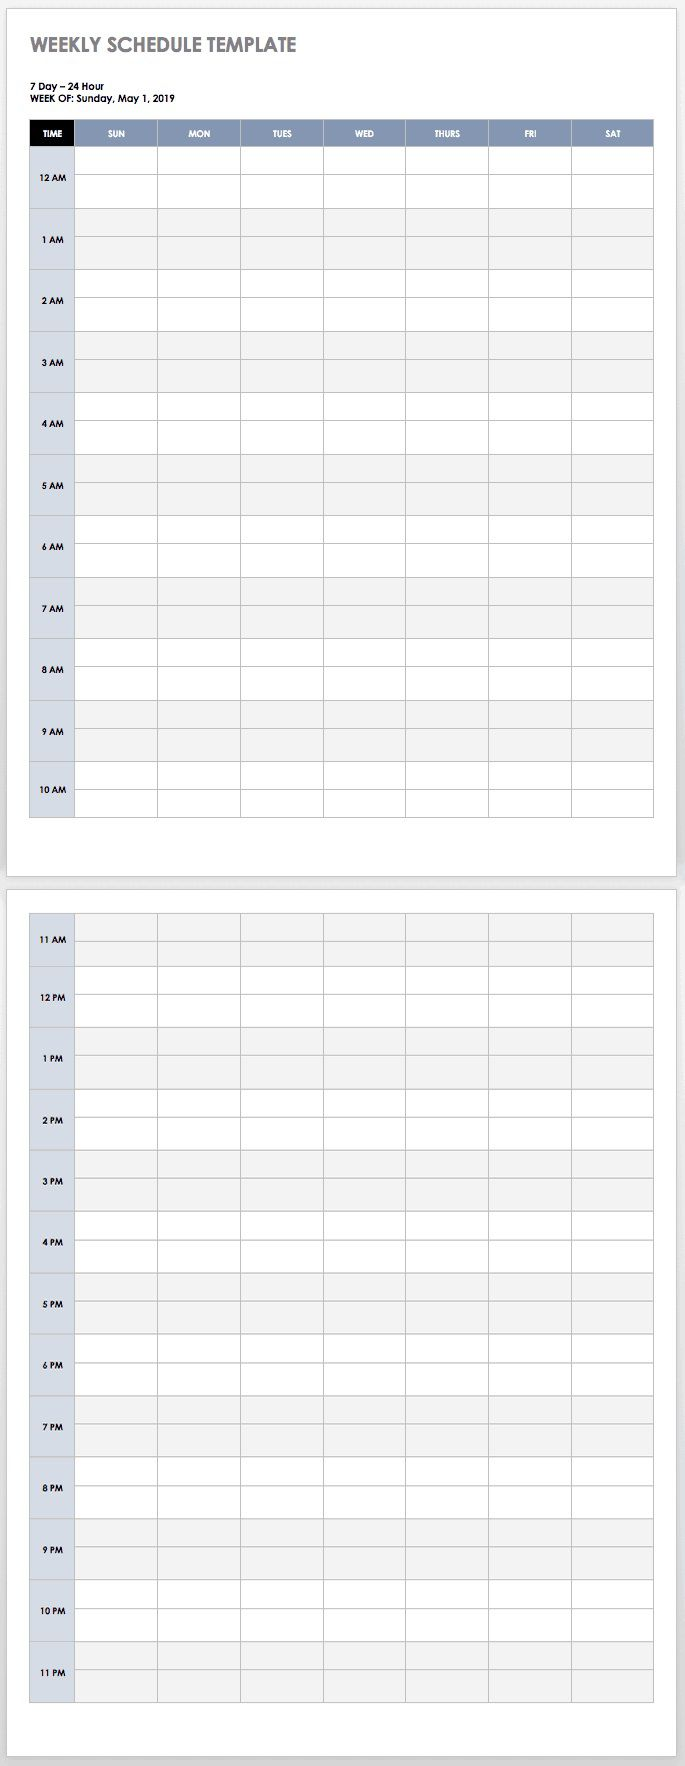 006 Beautiful Weekly Schedule Template Word Picture  School Work PlanFull